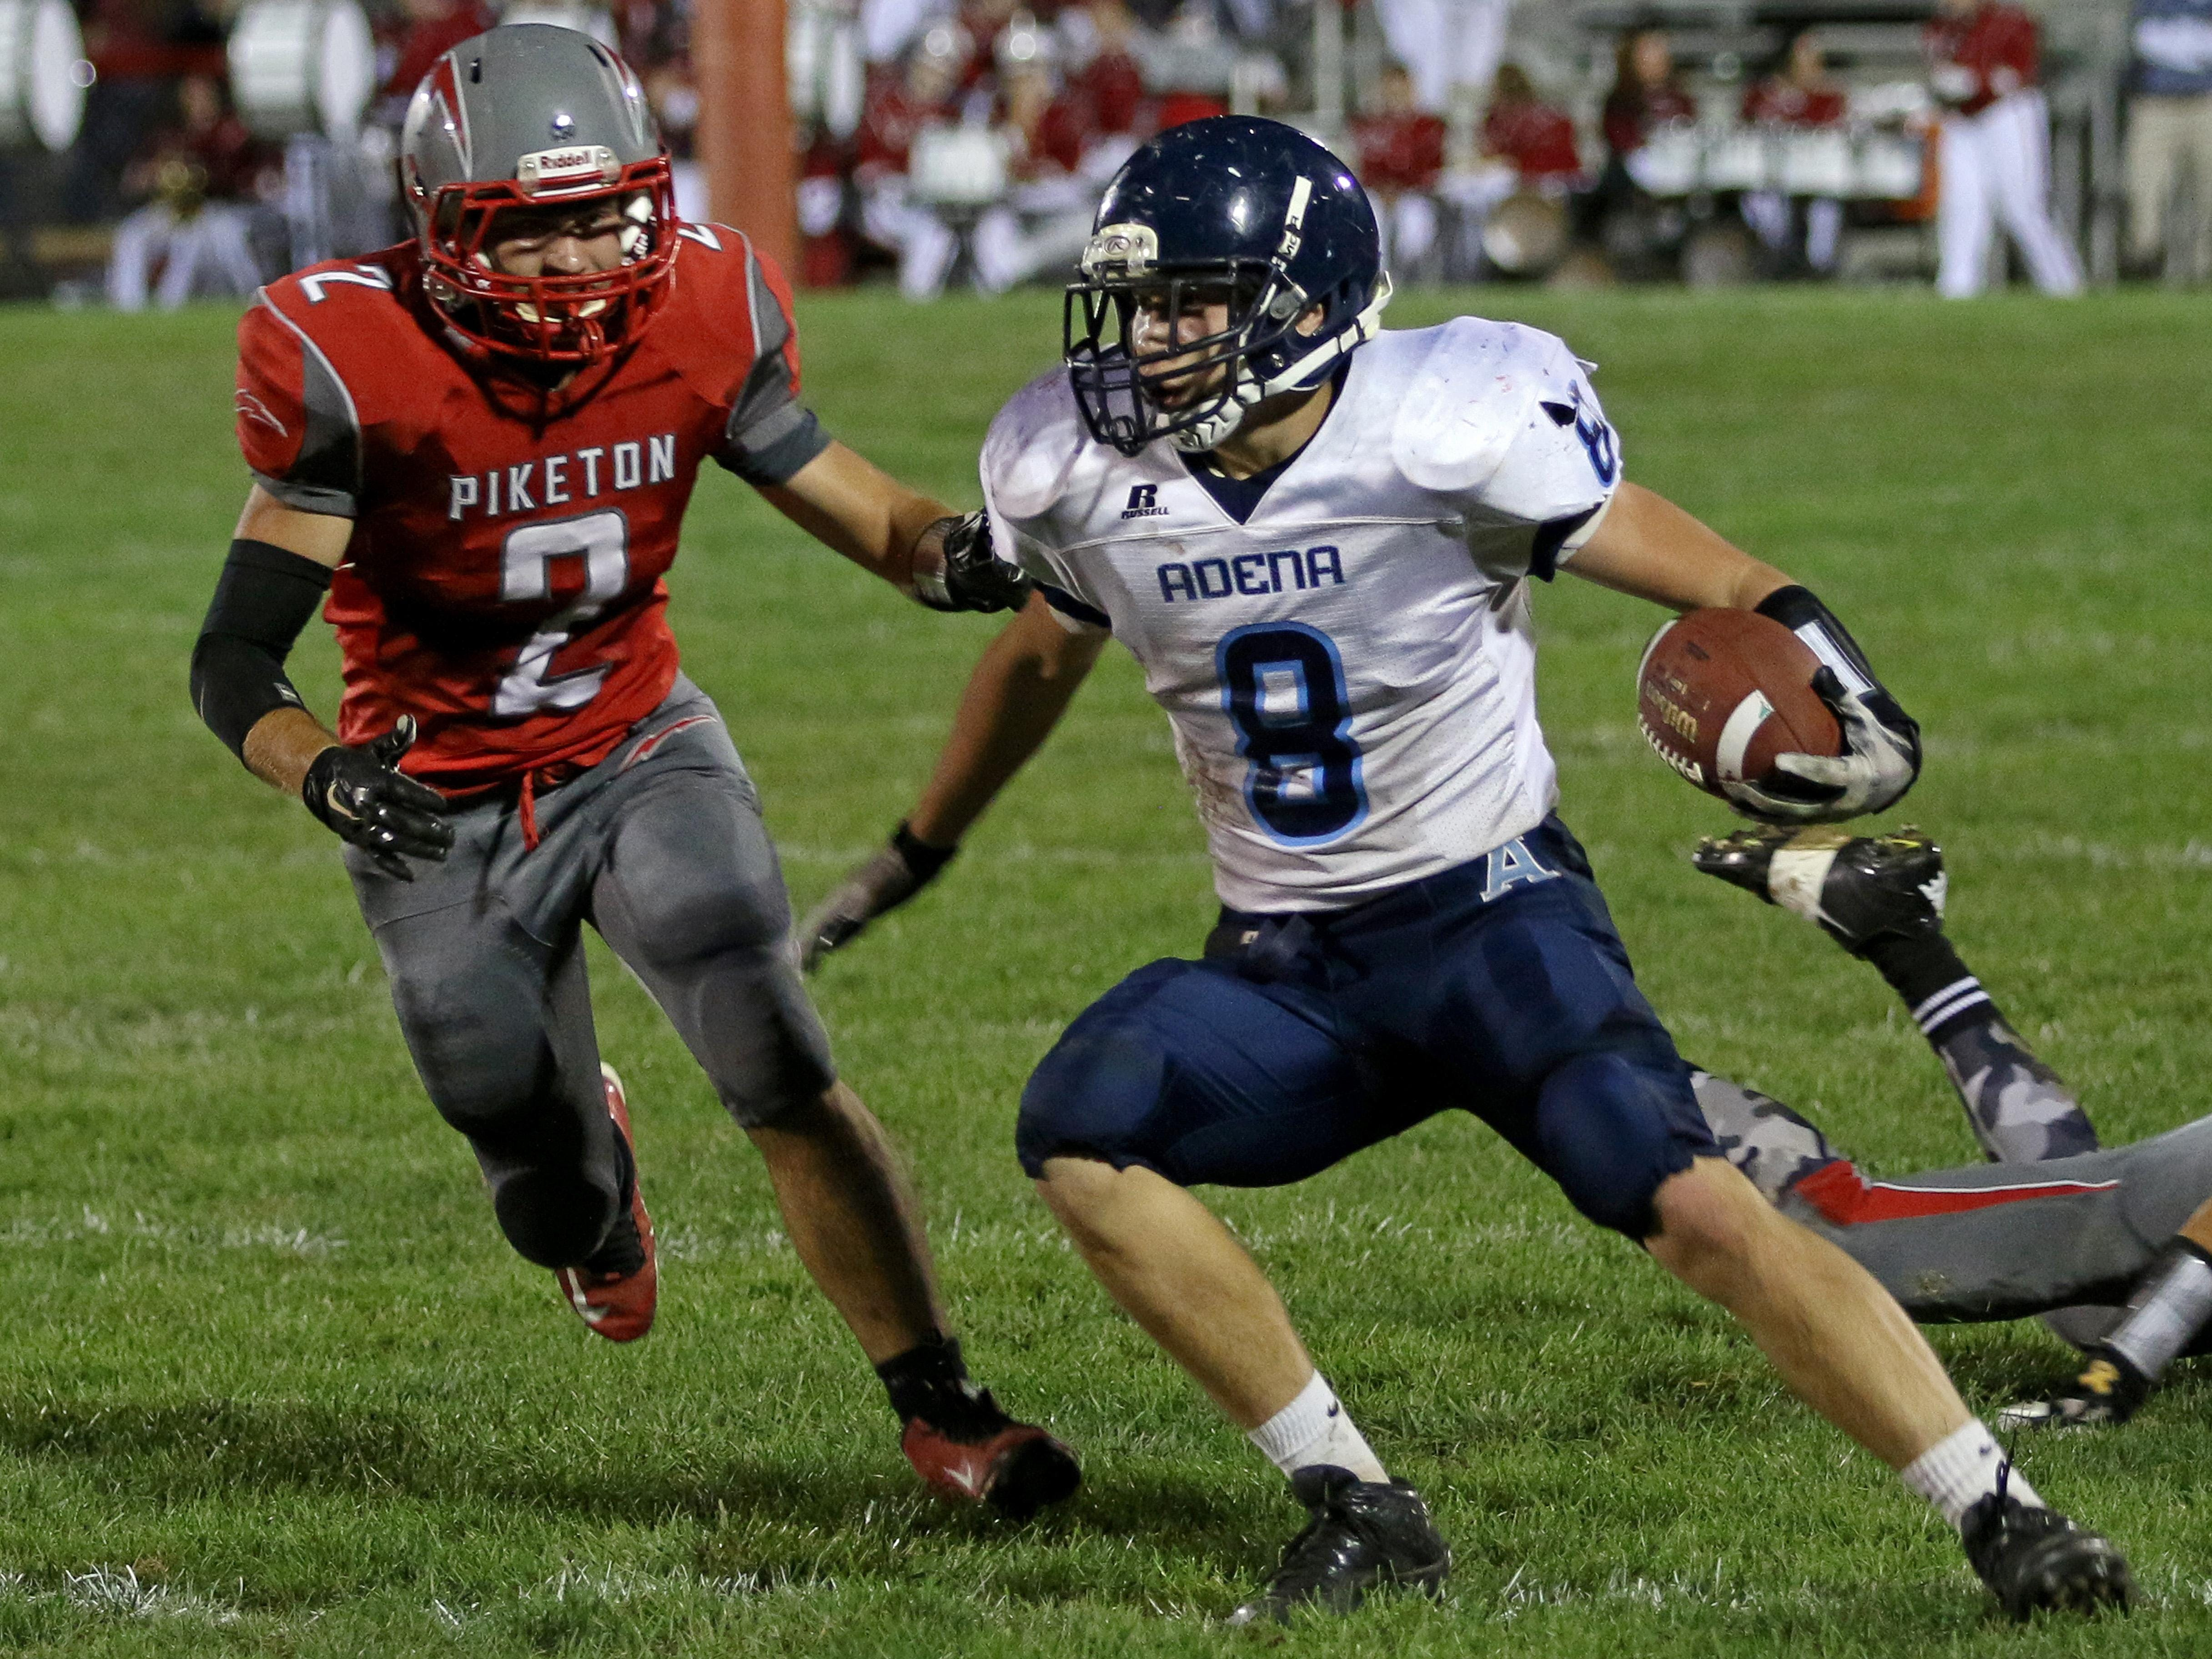 Adena's Isaac Thomas tries to outmaneuver Piketon's Brad Sickles as he runs the ball down field during Friday's game at Piketon. The final score was Adena 47, Piketon 12.